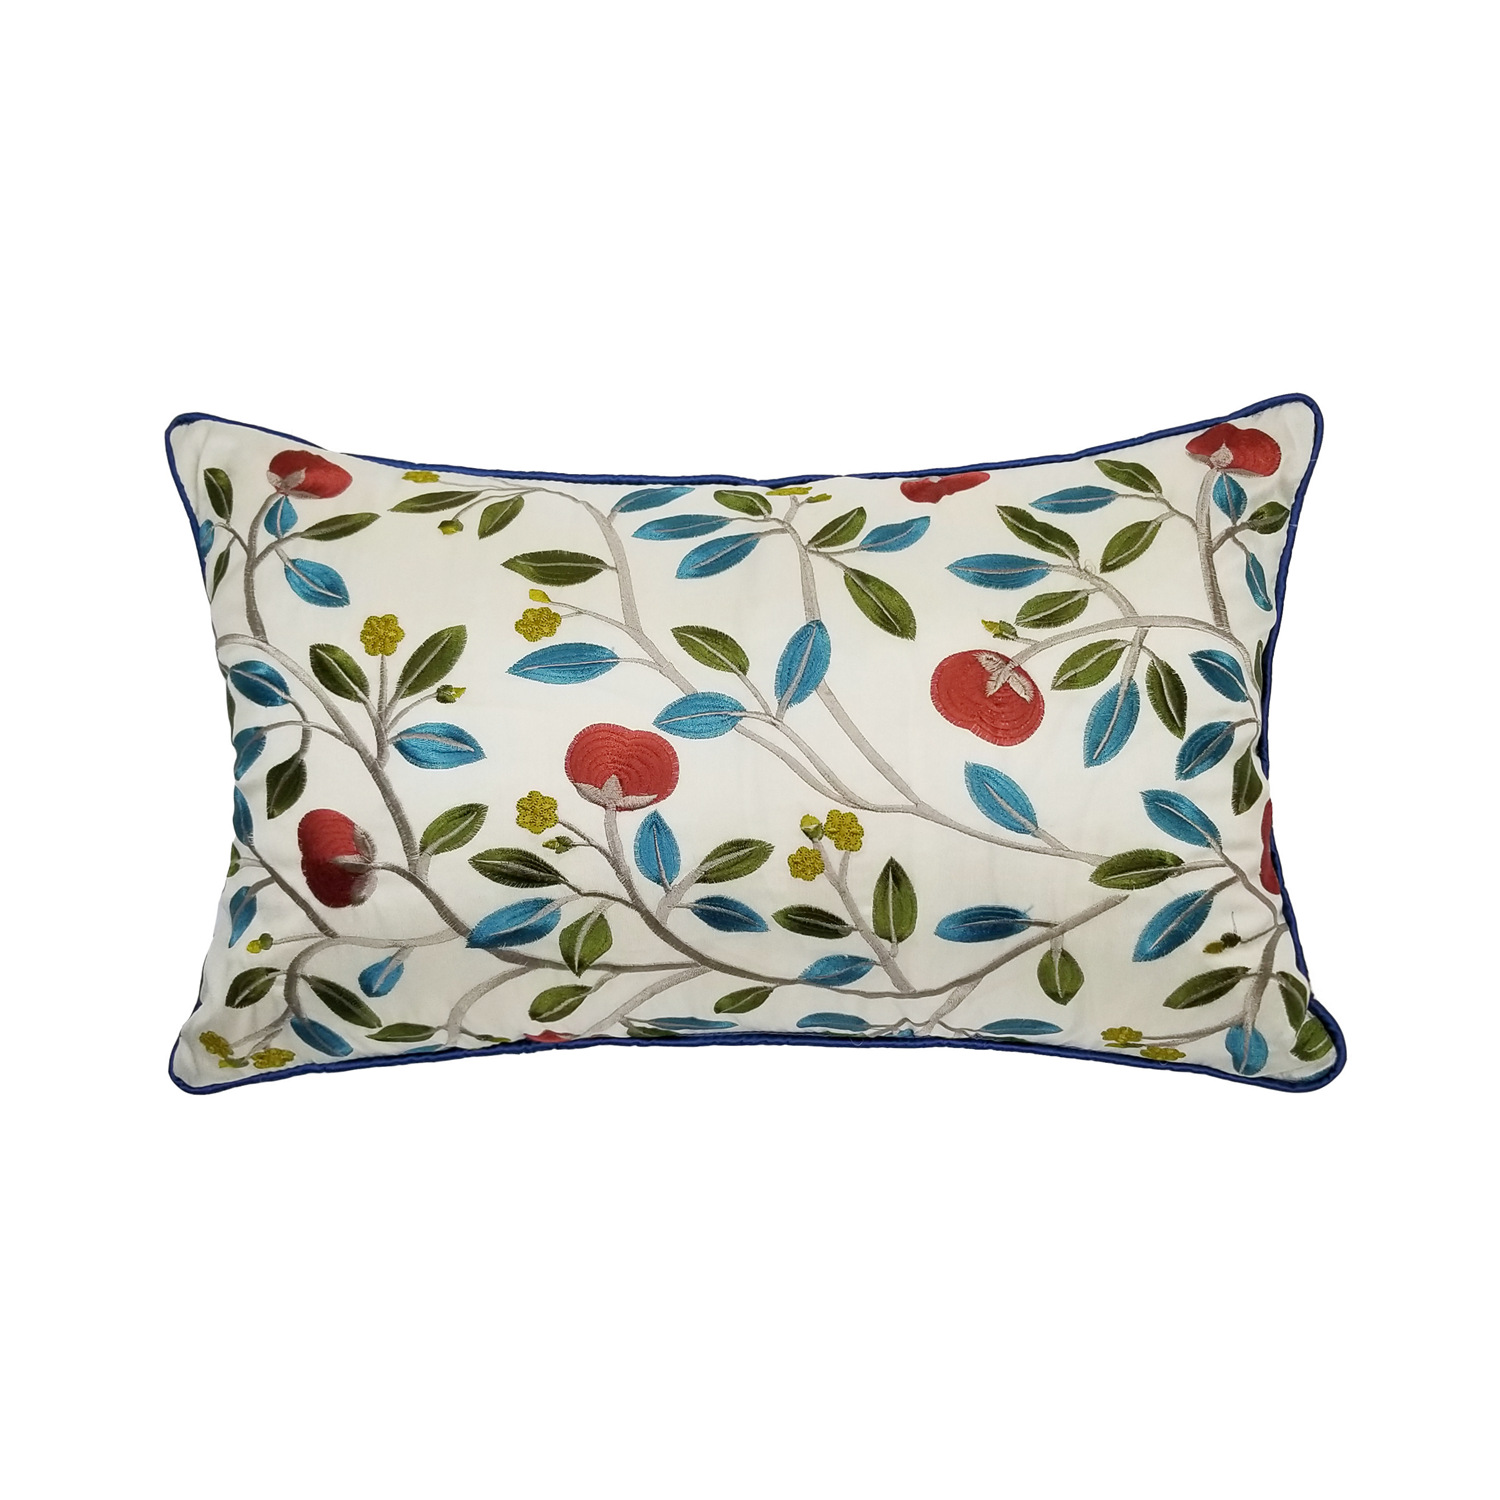 Luxurious Silk-like Embroidery Cushion Cover Blue Red Apple Flower Sofa Decorative Lumbar <font><b>Pillow</b></font> <font><b>Case</b></font> <font><b>30x50</b></font> cm Sell by piece image